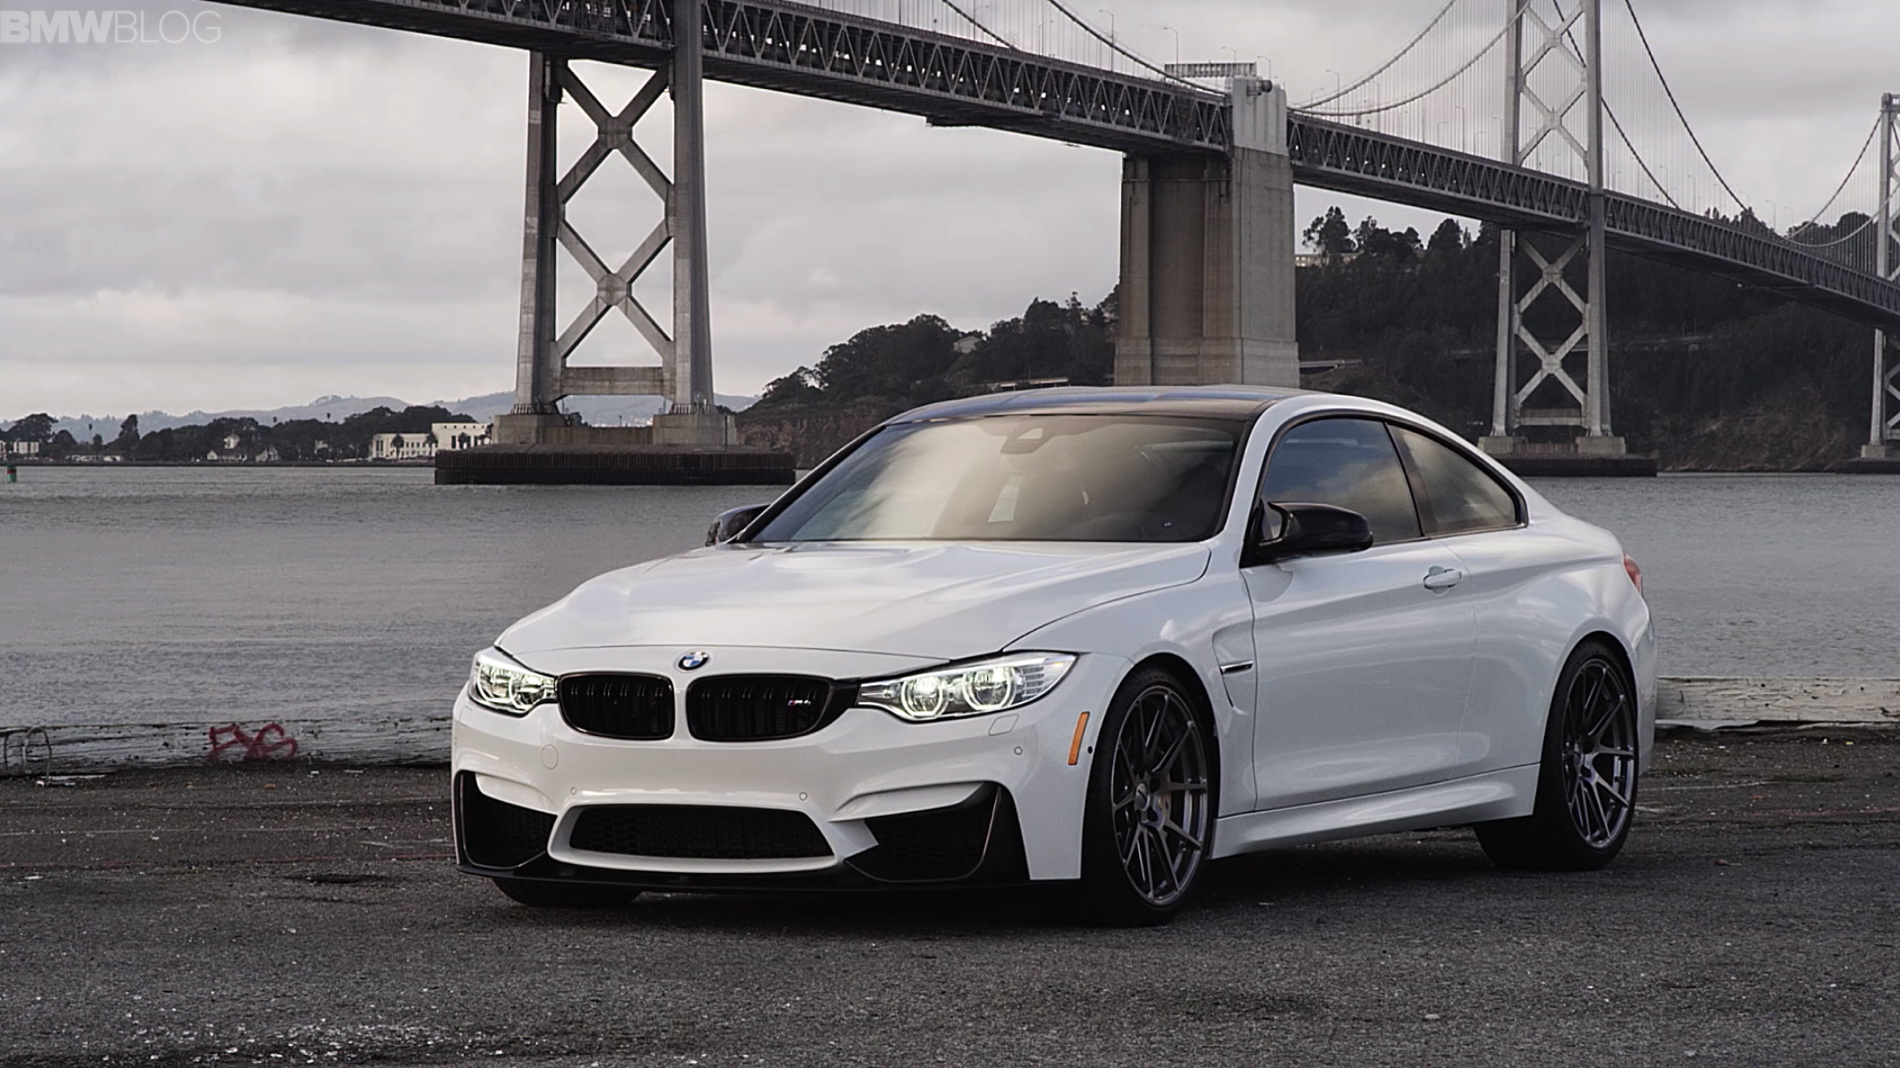 Bmw M4 Coupe Wallpapers Vehicles Hq Bmw M4 Coupe Pictures 4k Wallpapers 2019